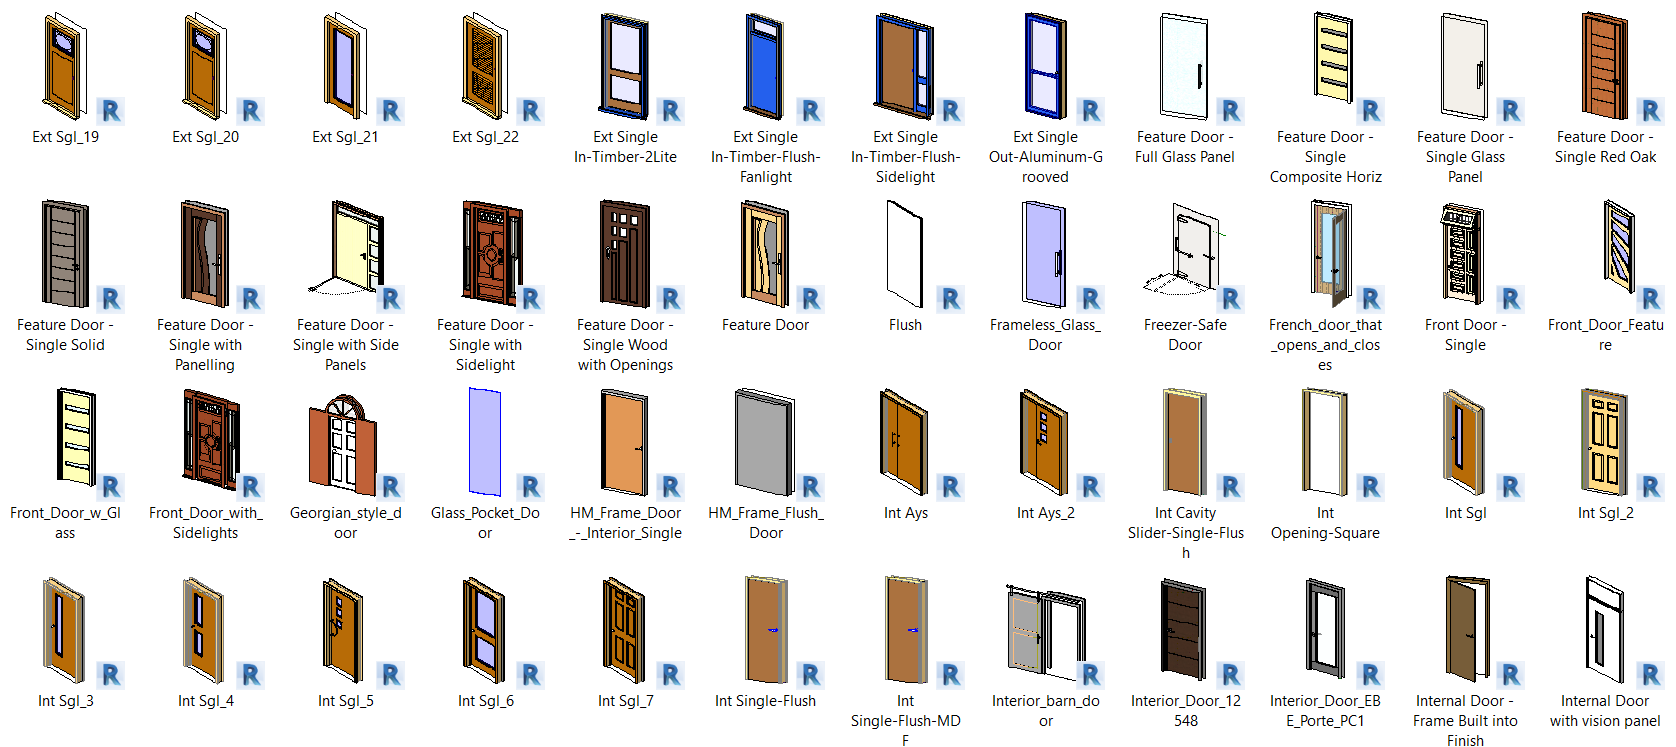 Doors - Single 2 Gallery.PNG